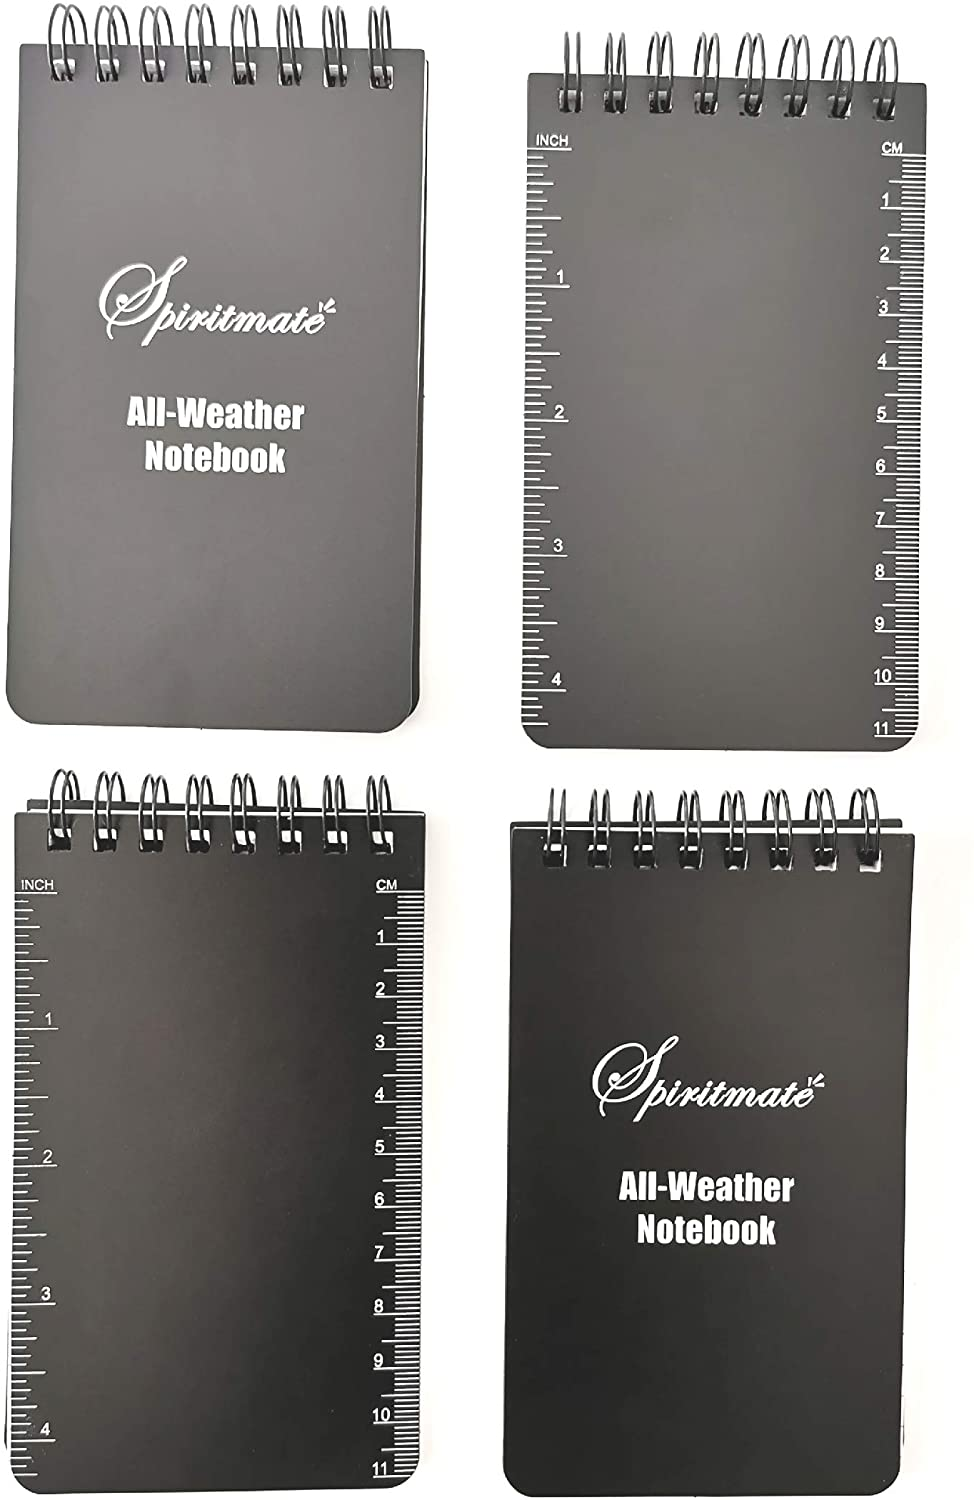 SPIRITMATE All-Weather Top Spiral Notebooks 3x5inches Hardcover Thick 120G Waterproof Stone Paper, Ruled line and Graph Grid in One Design Note Pads, 50Sheets/100PagesPer Each Notebook (4Pack)